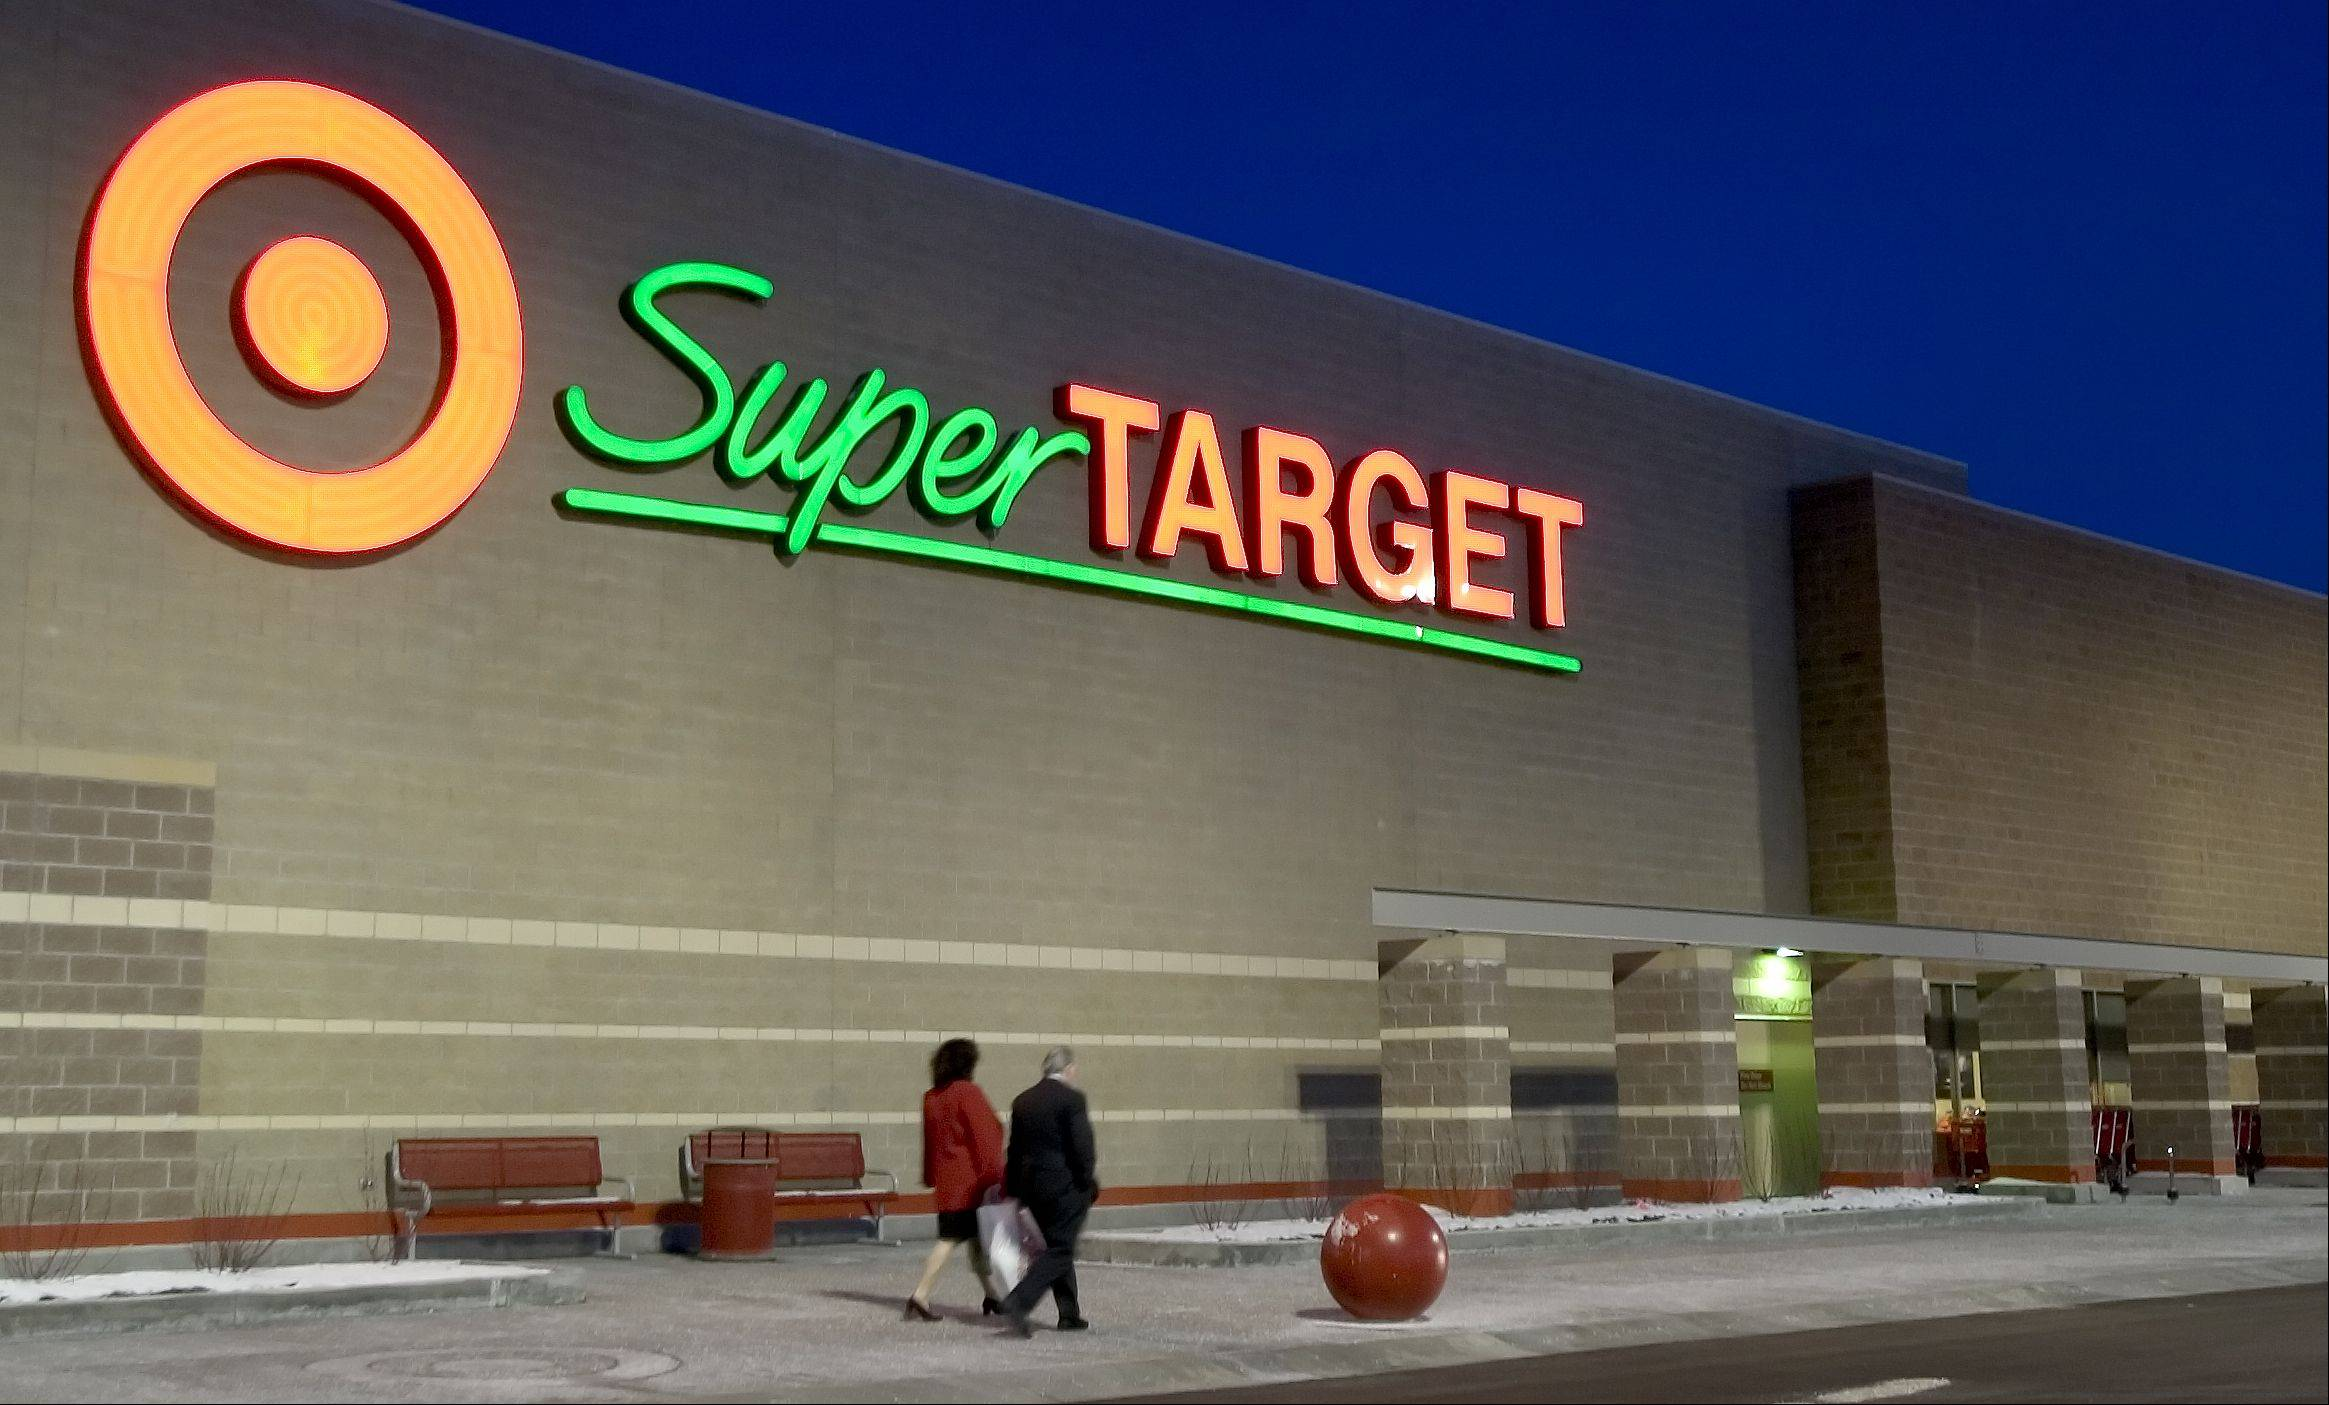 Just in time for the holiday shopping season, Target is rolling out a service that allows customers to order products online and then pick them up at its stores as the discounter seeks to cater to tech-savvy, time-pressured customers. Target Corp. said Wednesday that the service is now in about half of its 1,800 U.S. stores and will be expanded to the rest of its U.S stores by Nov. 1.